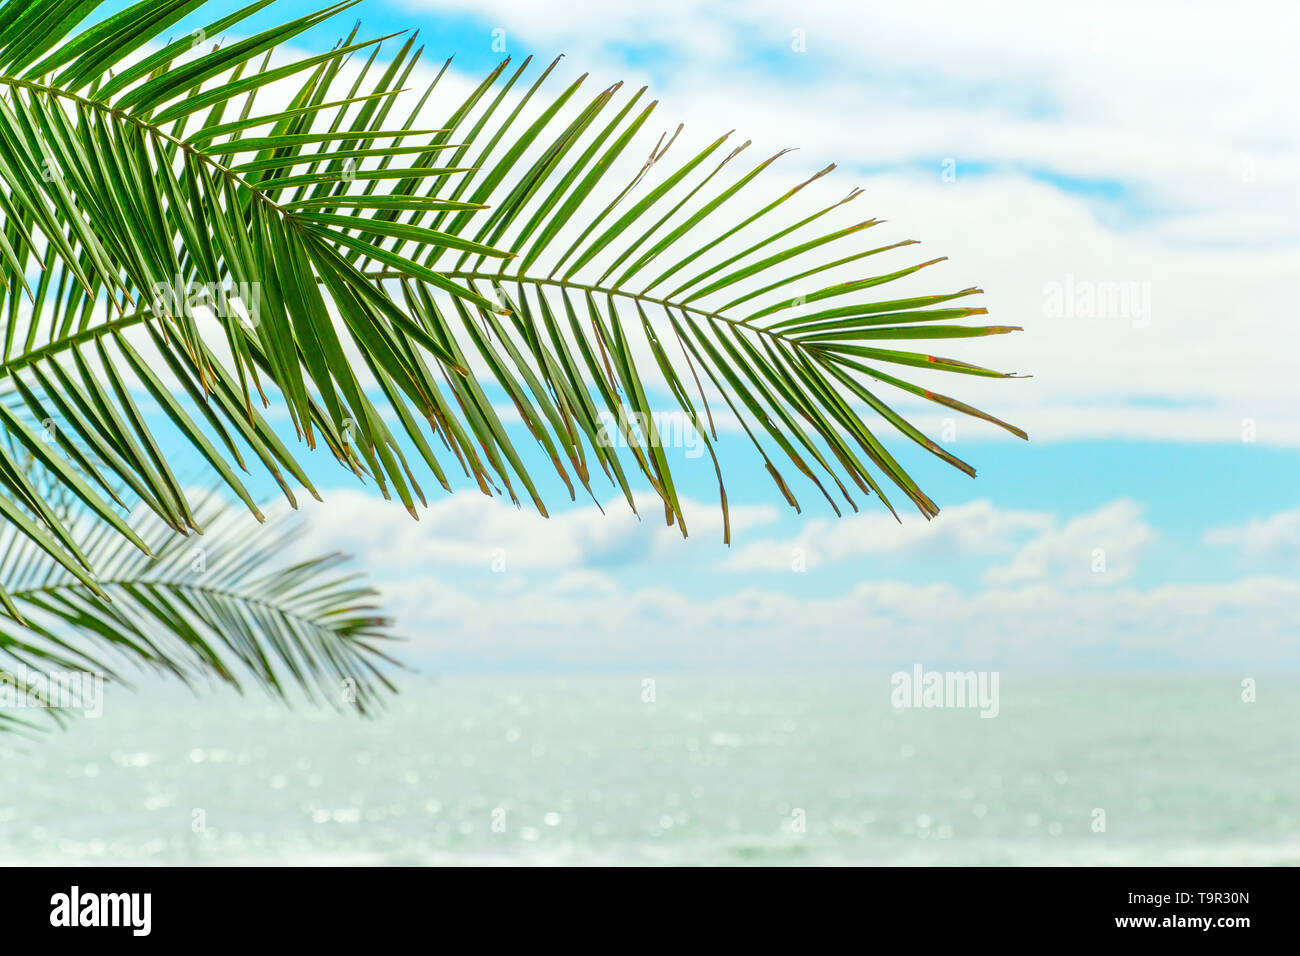 palm  green leaf against the blue sky and water - Stock Image